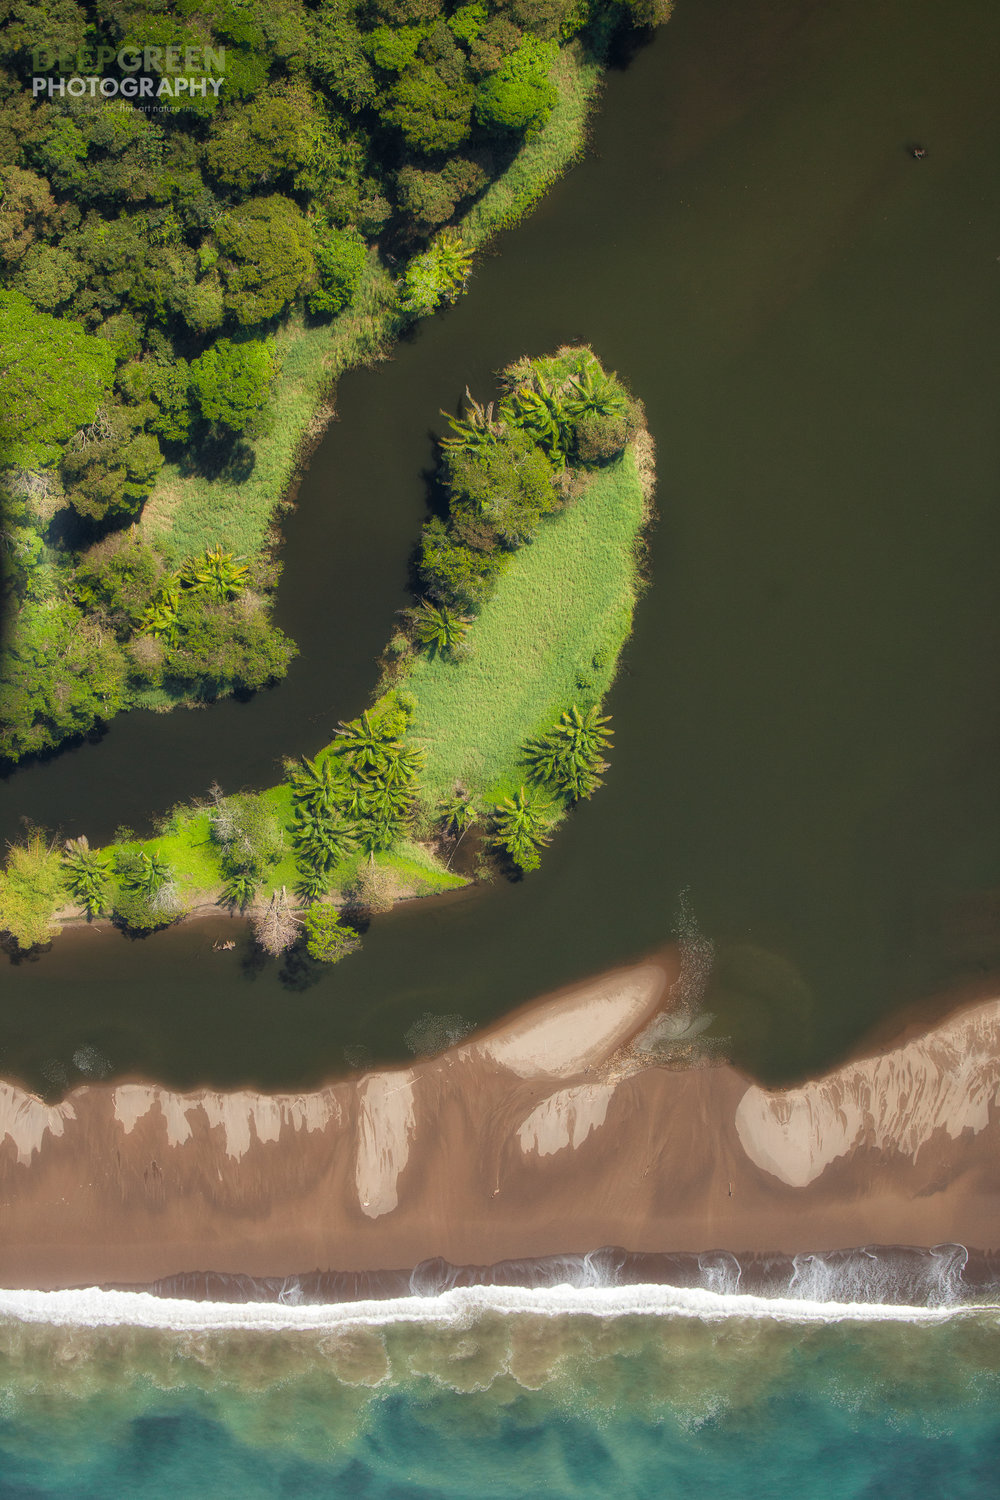 Surf, sand, and mangroves near Drake Bay on Costa Rica's Osa Peninsula, one of the most biodiverse places on the planet